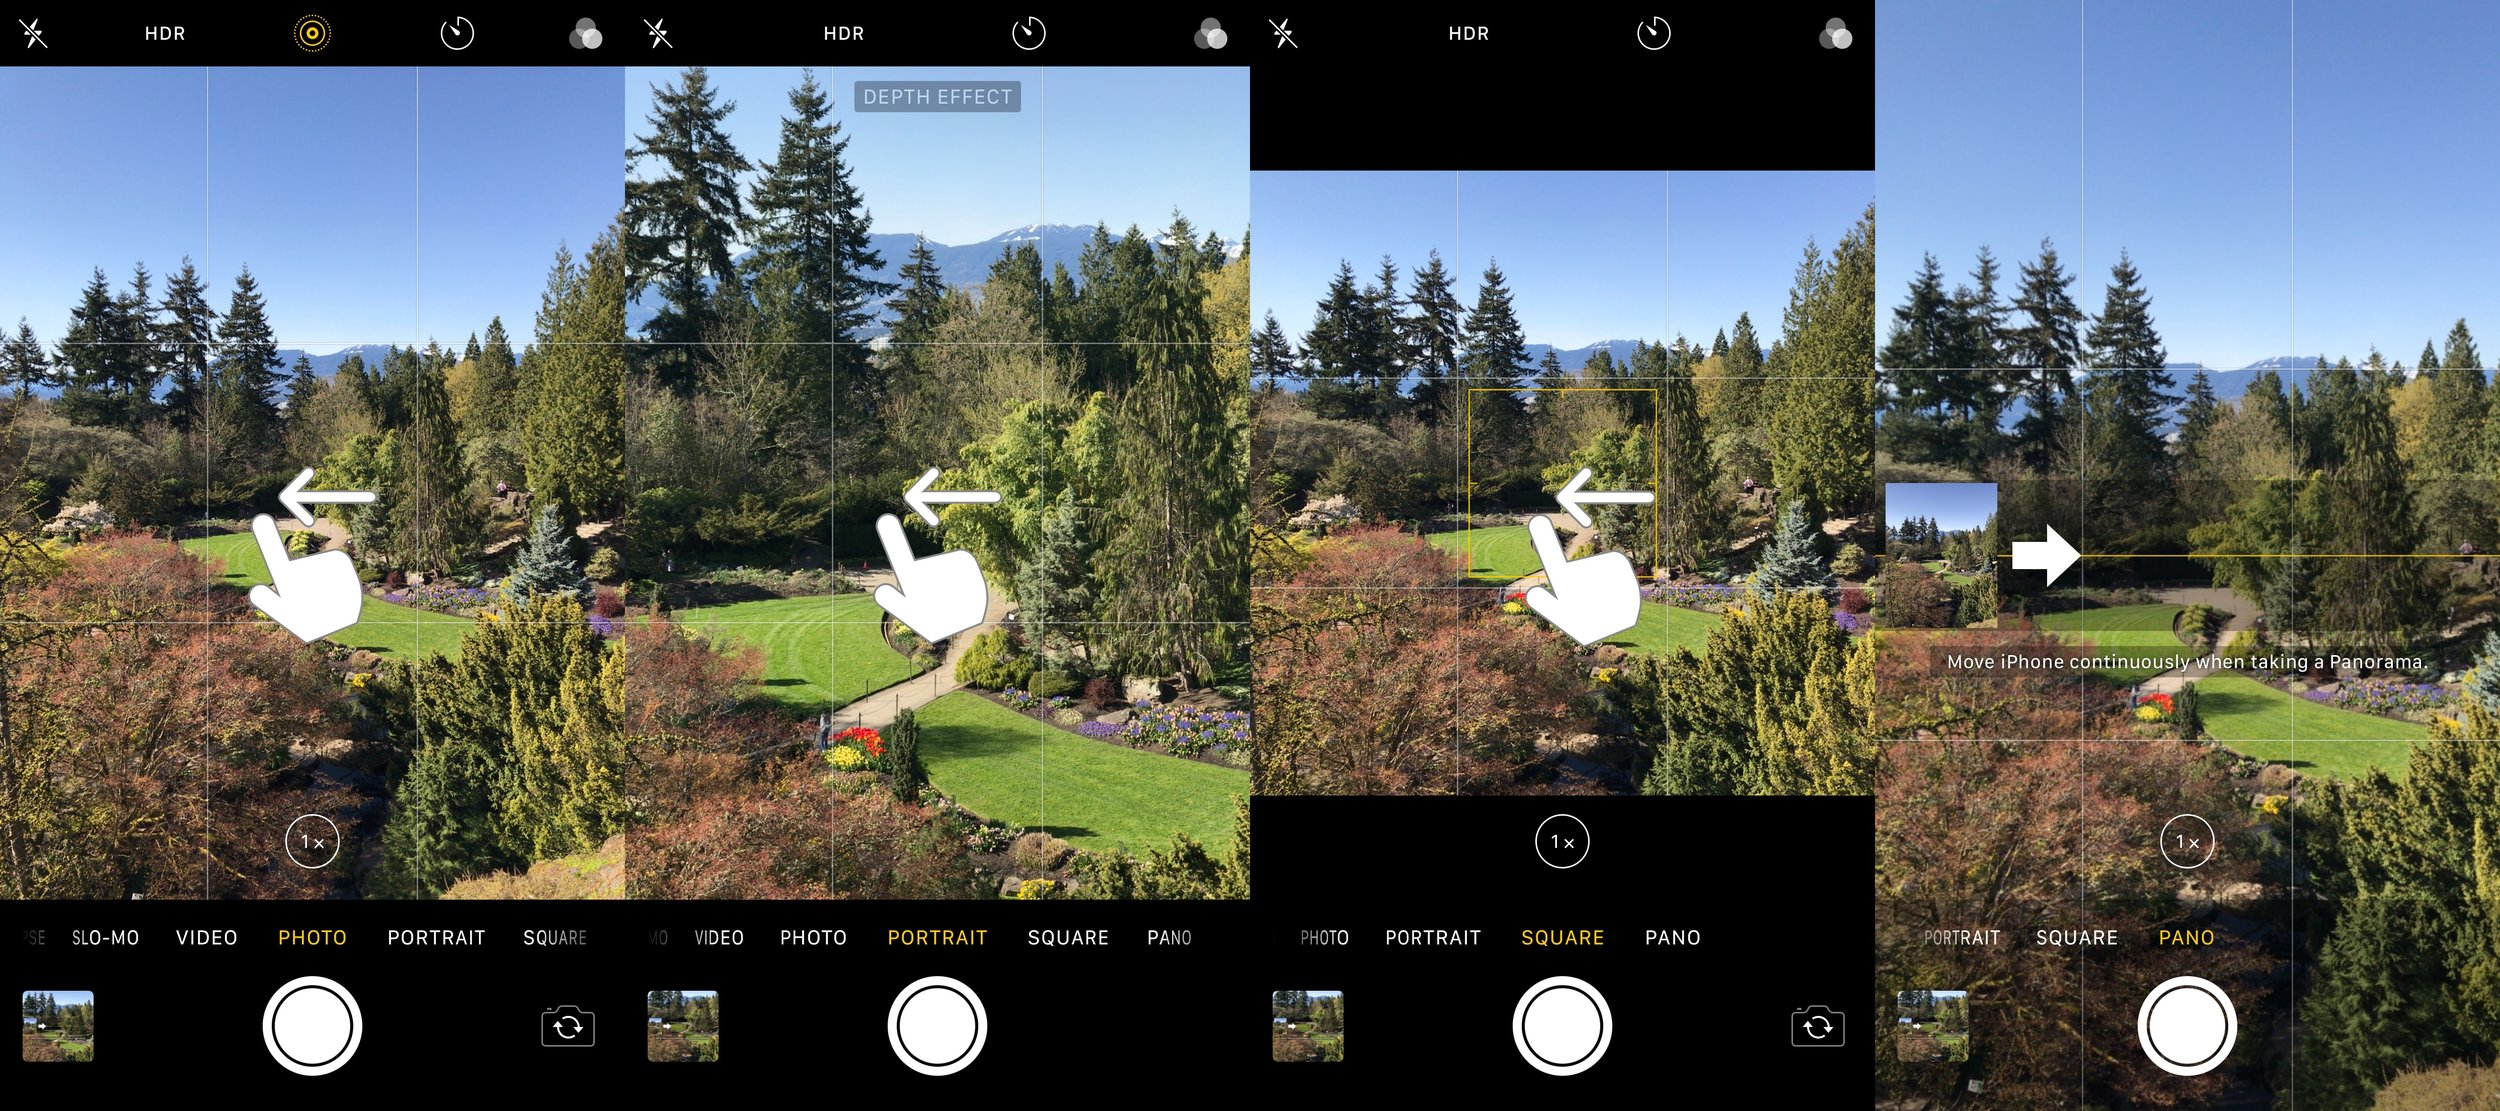 3 swipes required between Photo & Pano